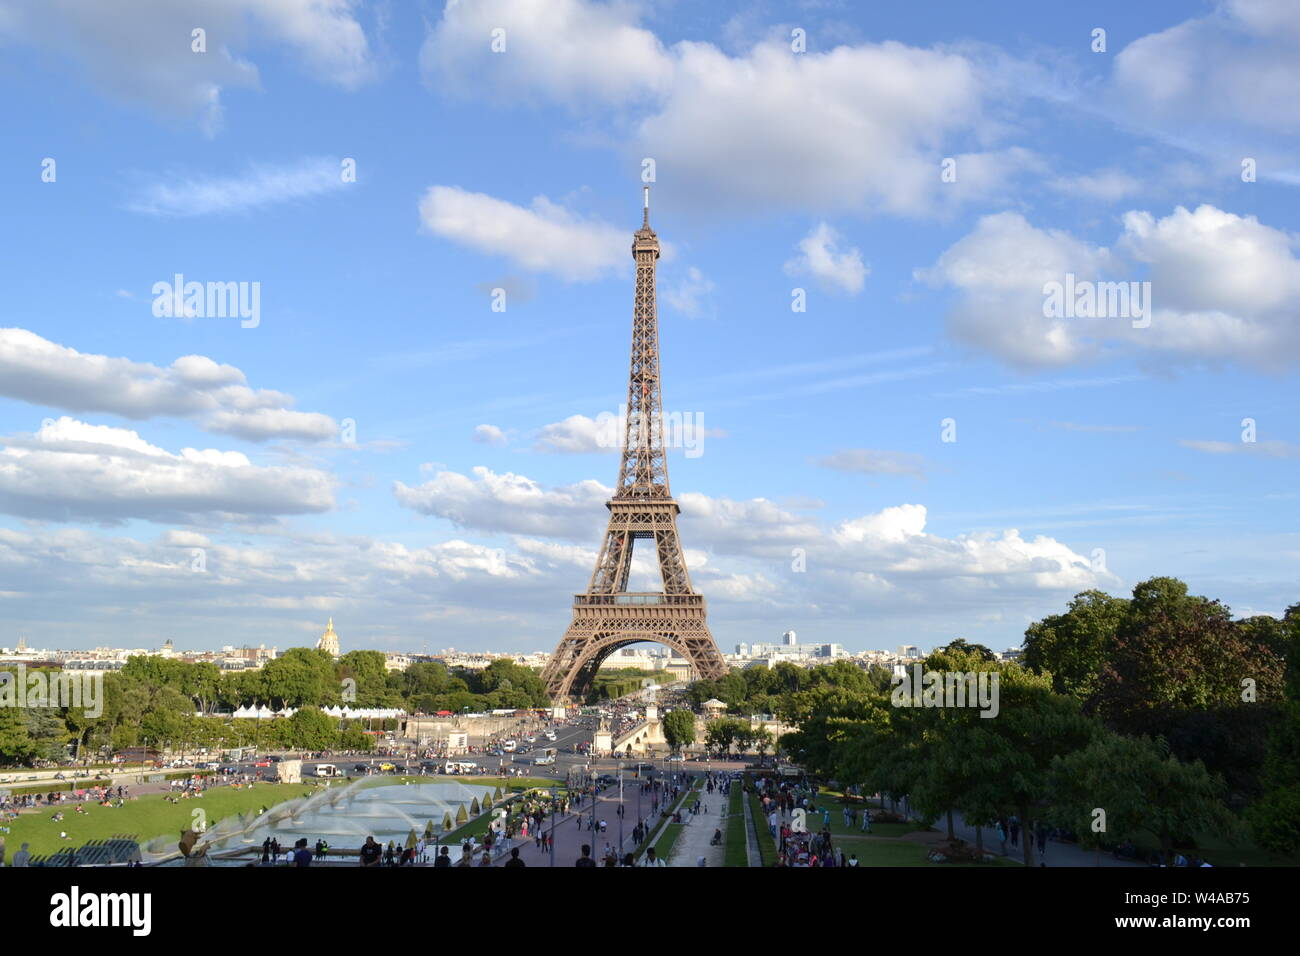 Paris/France - August 18, 2014: Beautiful panoramic view to the fountain of Warsaw and the Eiffel Tower from Trocadero gardens viewpoint. Stock Photo